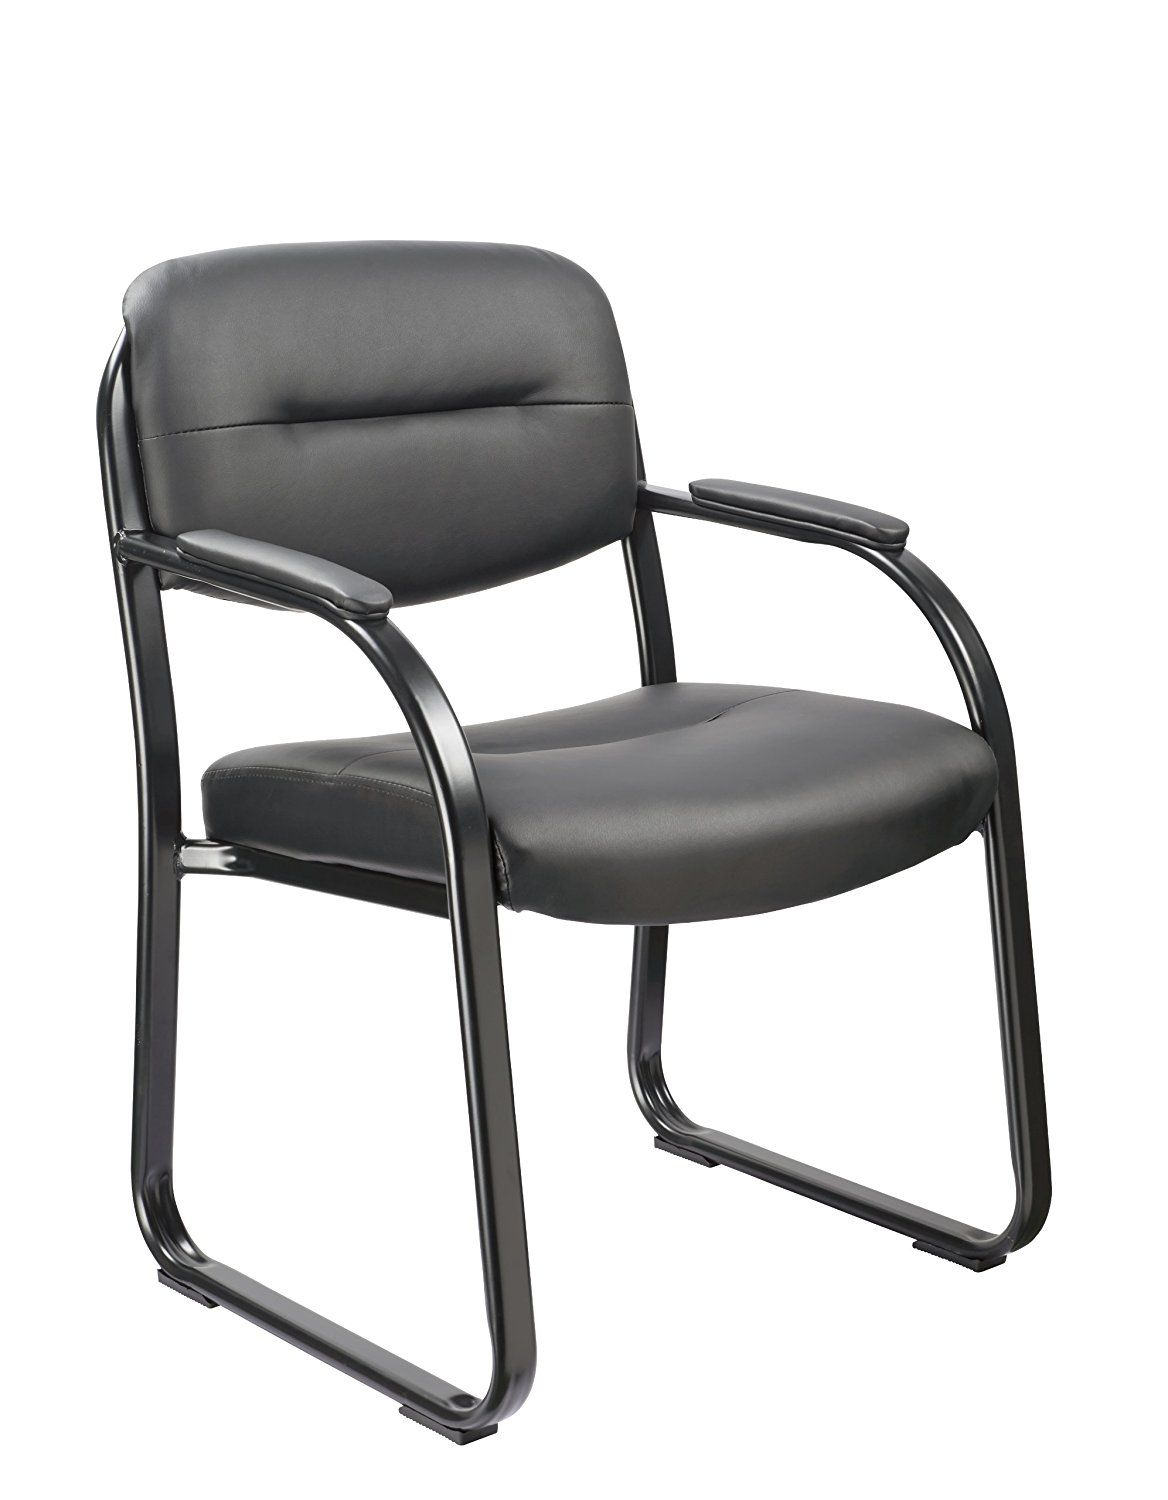 Vinyl guest chairs from Office Factor